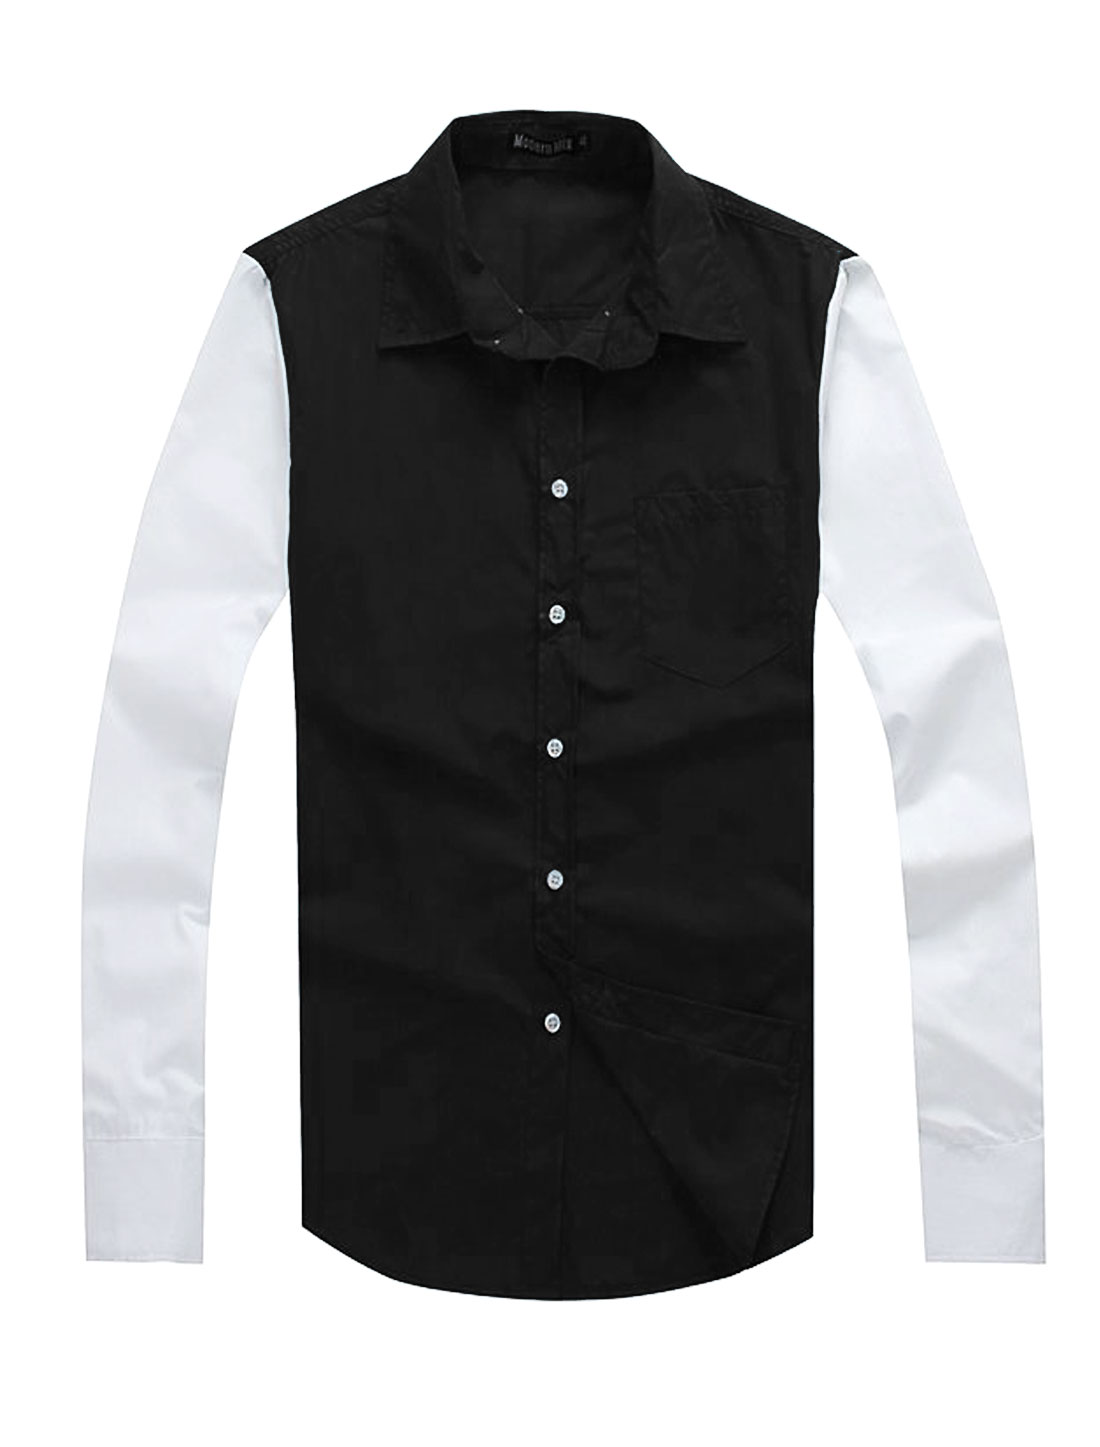 Men Casual Point Collar Two Tone One Chest Pocket Shirt Black M